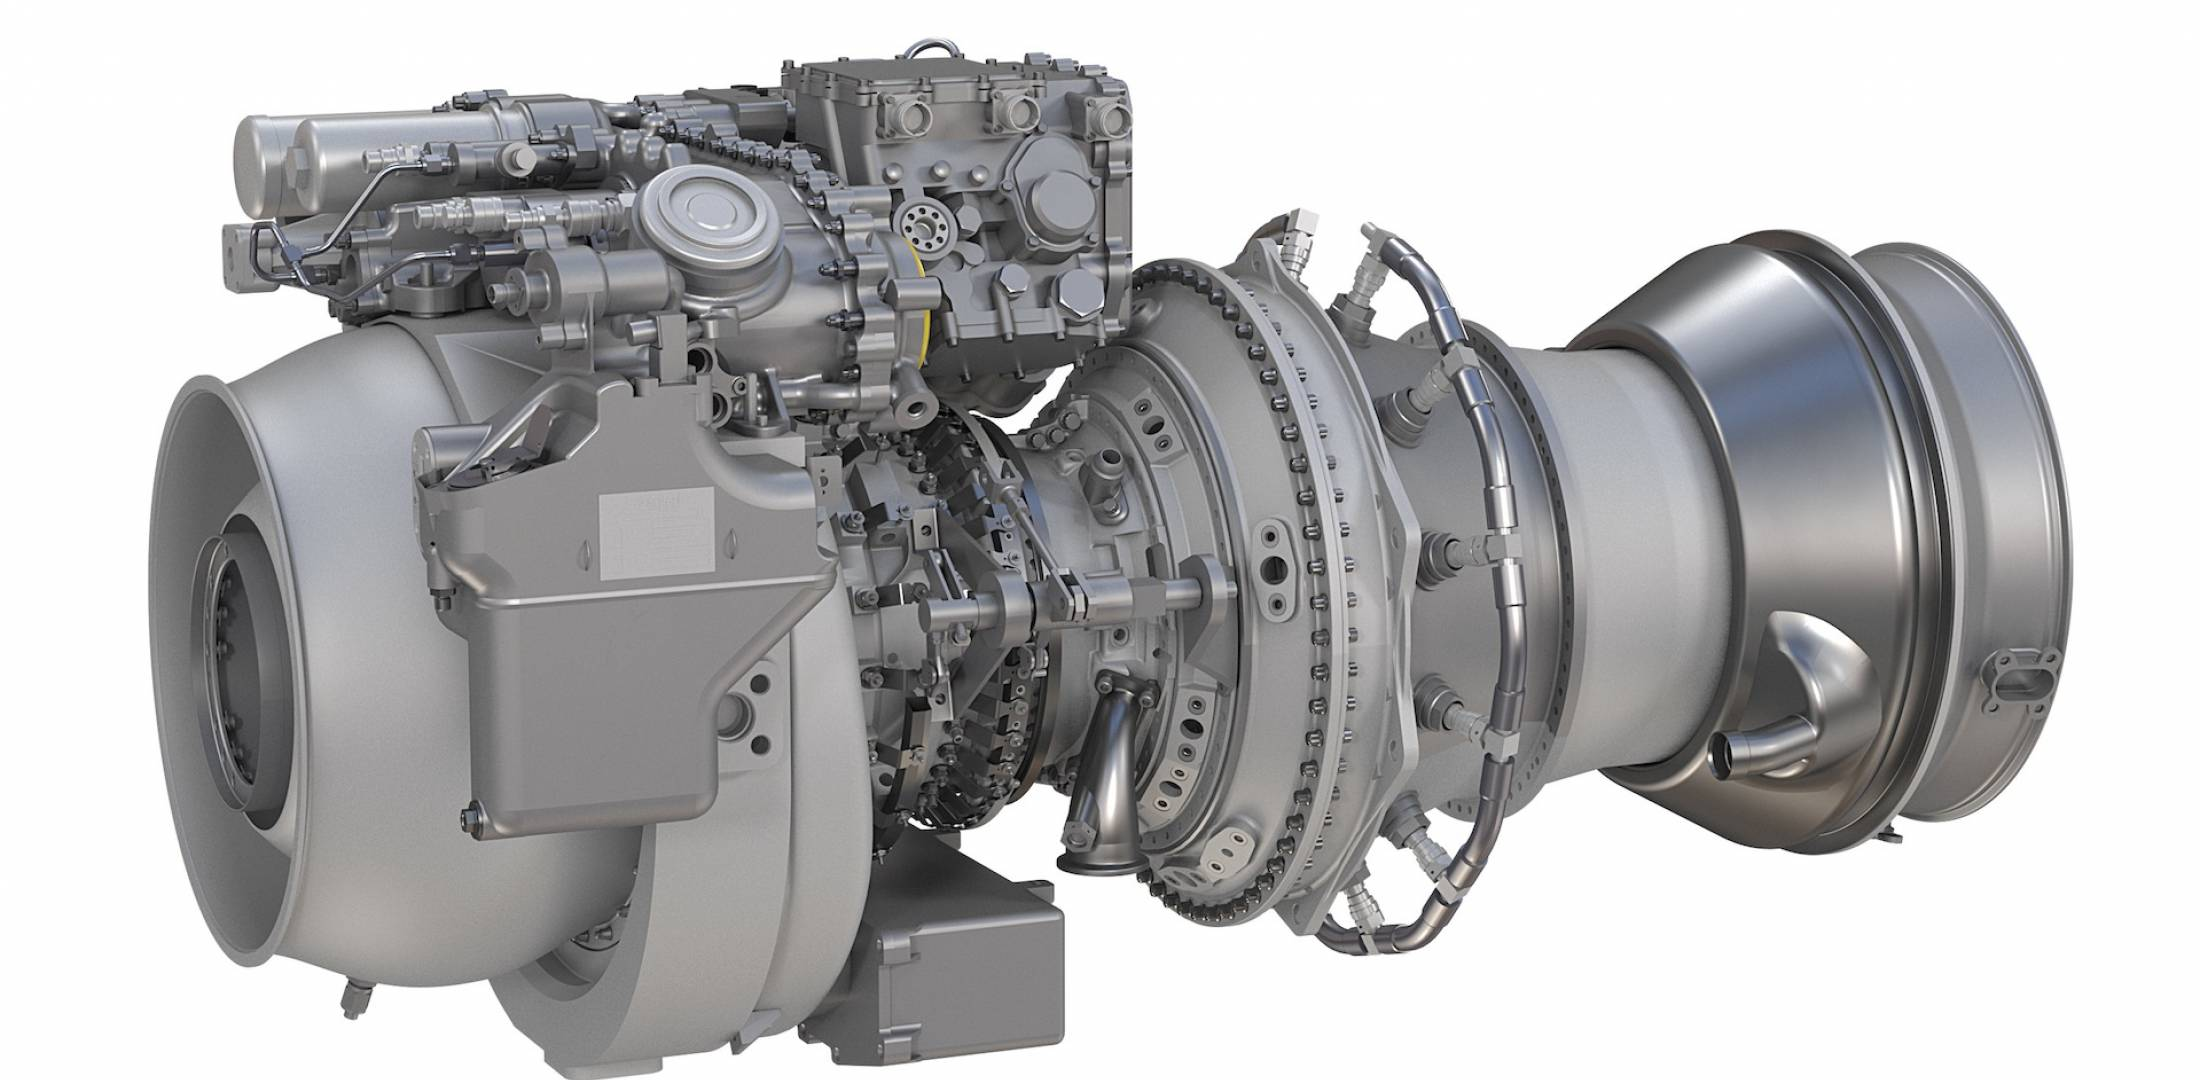 U S Army Issues Request for Improved Turbine Engine Design